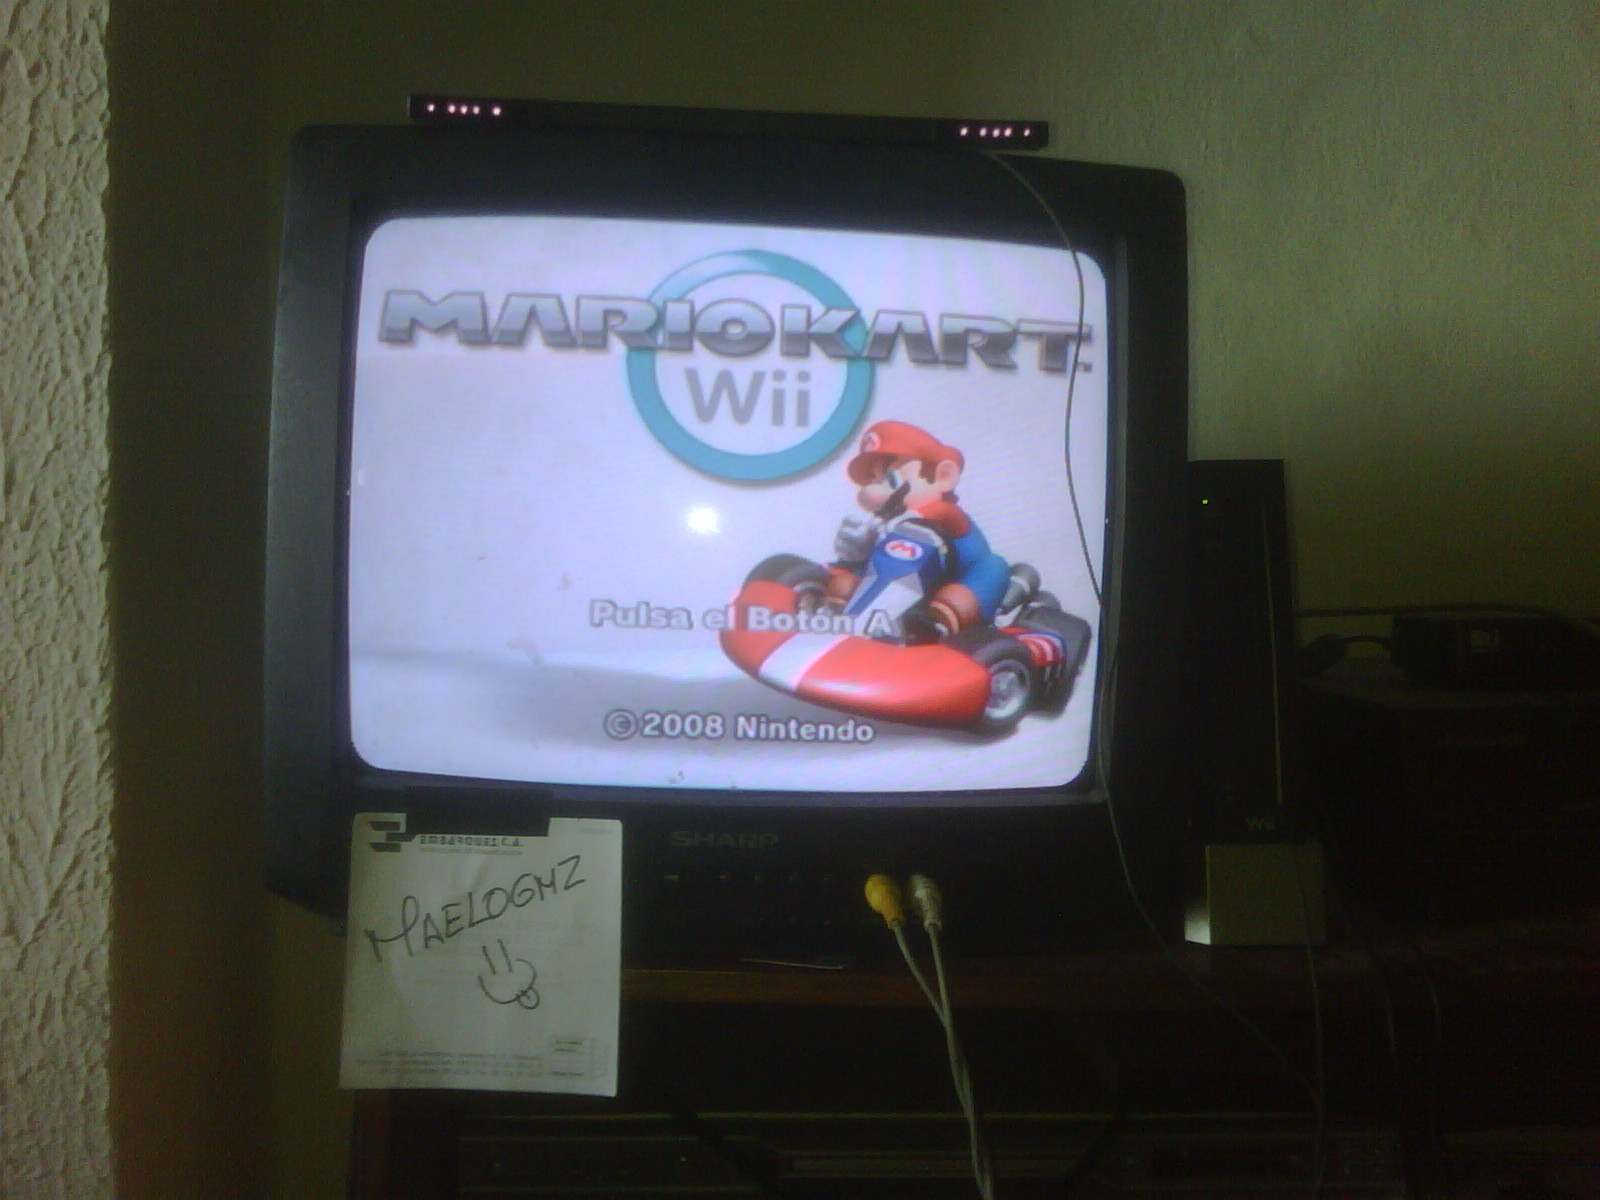 Mario Kart Wii: Time Trials: Mushroom Gorge [Best Time] time of 0:02:06.449